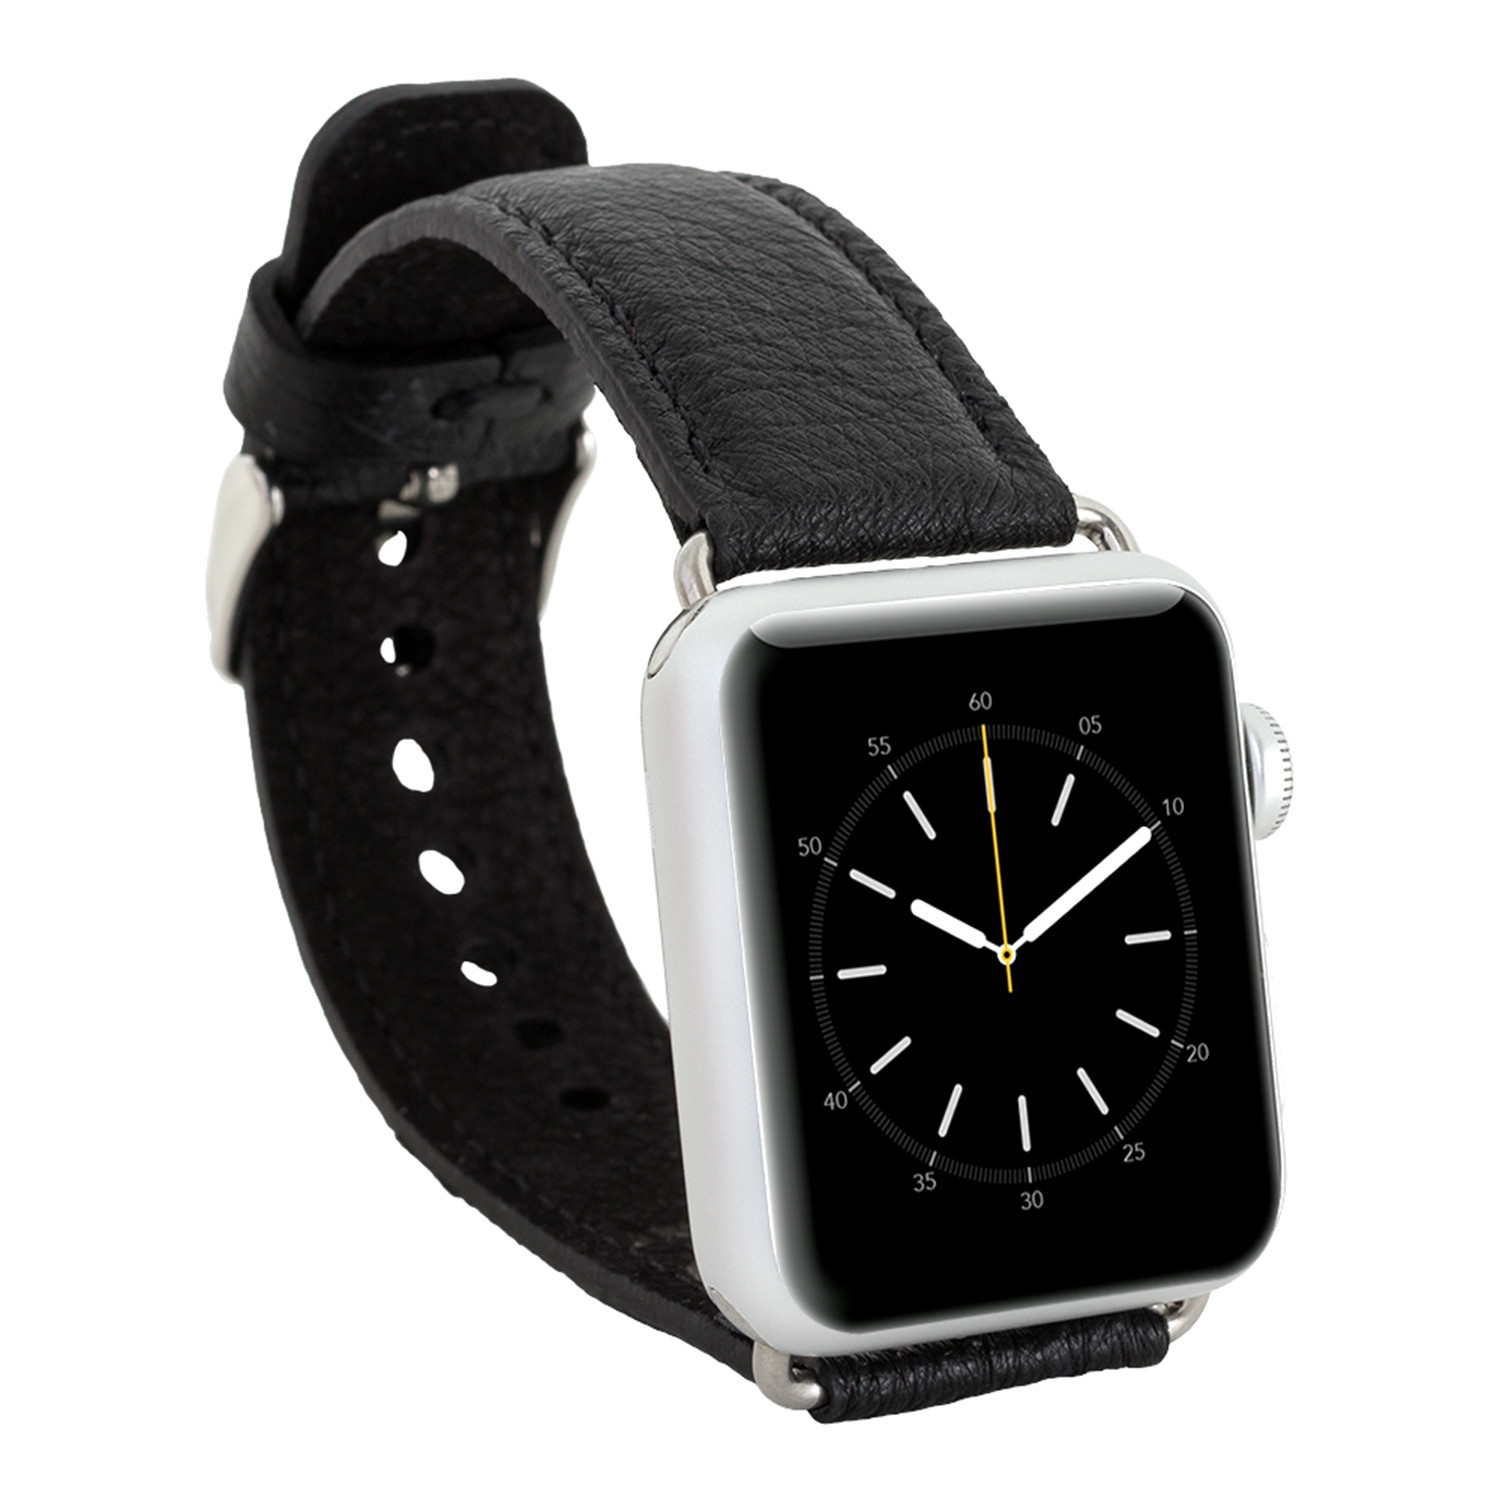 Ostrich Leather Apple Watch Band // Black (38mm)